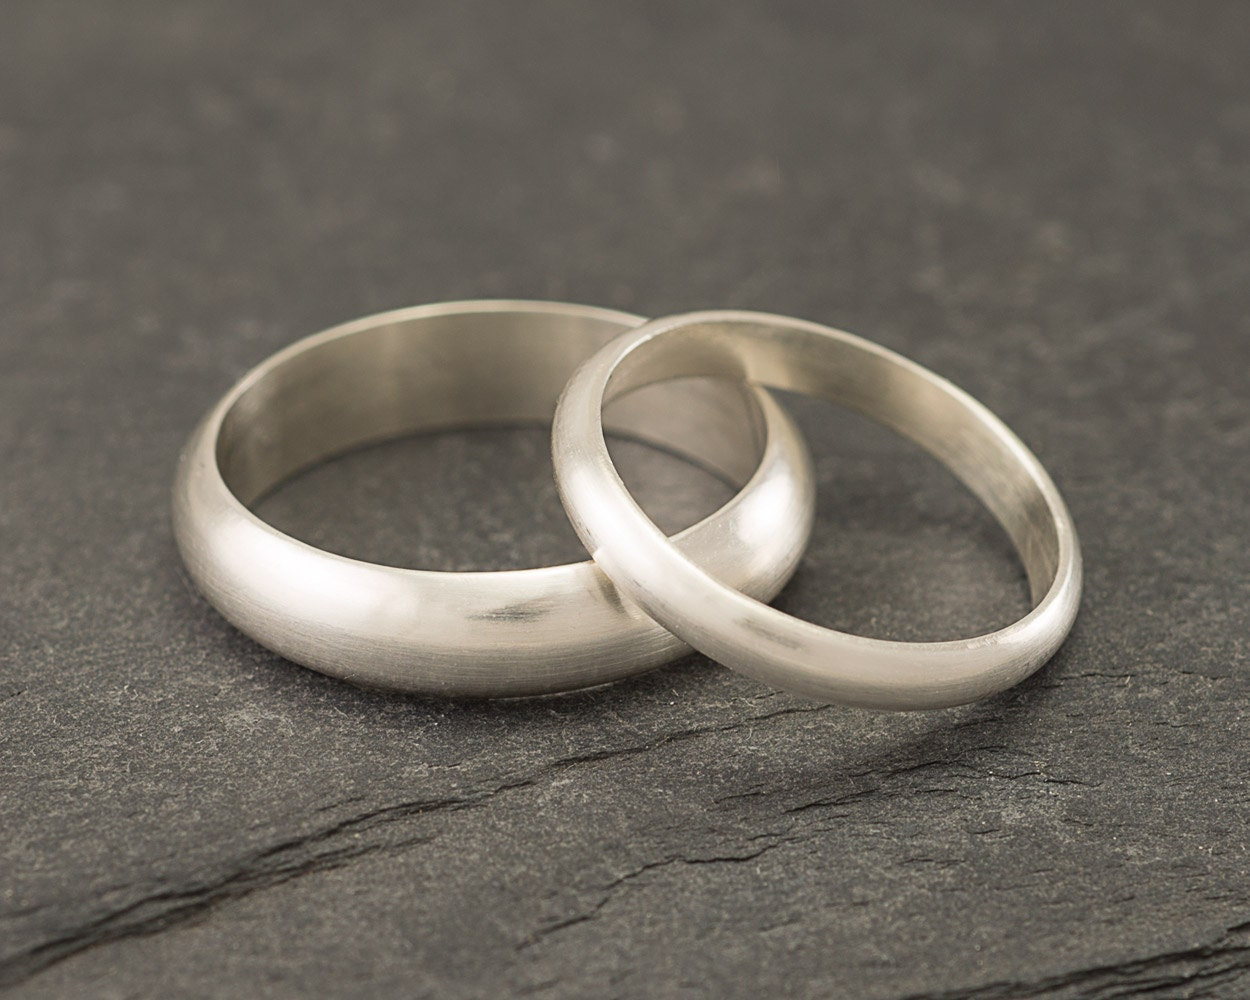 Wedding Band Set  Brushed Wedding Rings  Sterling Silver Wedding Bands  Wedding  Ring Set  Silver Ring Band  Brushed Wedding Band